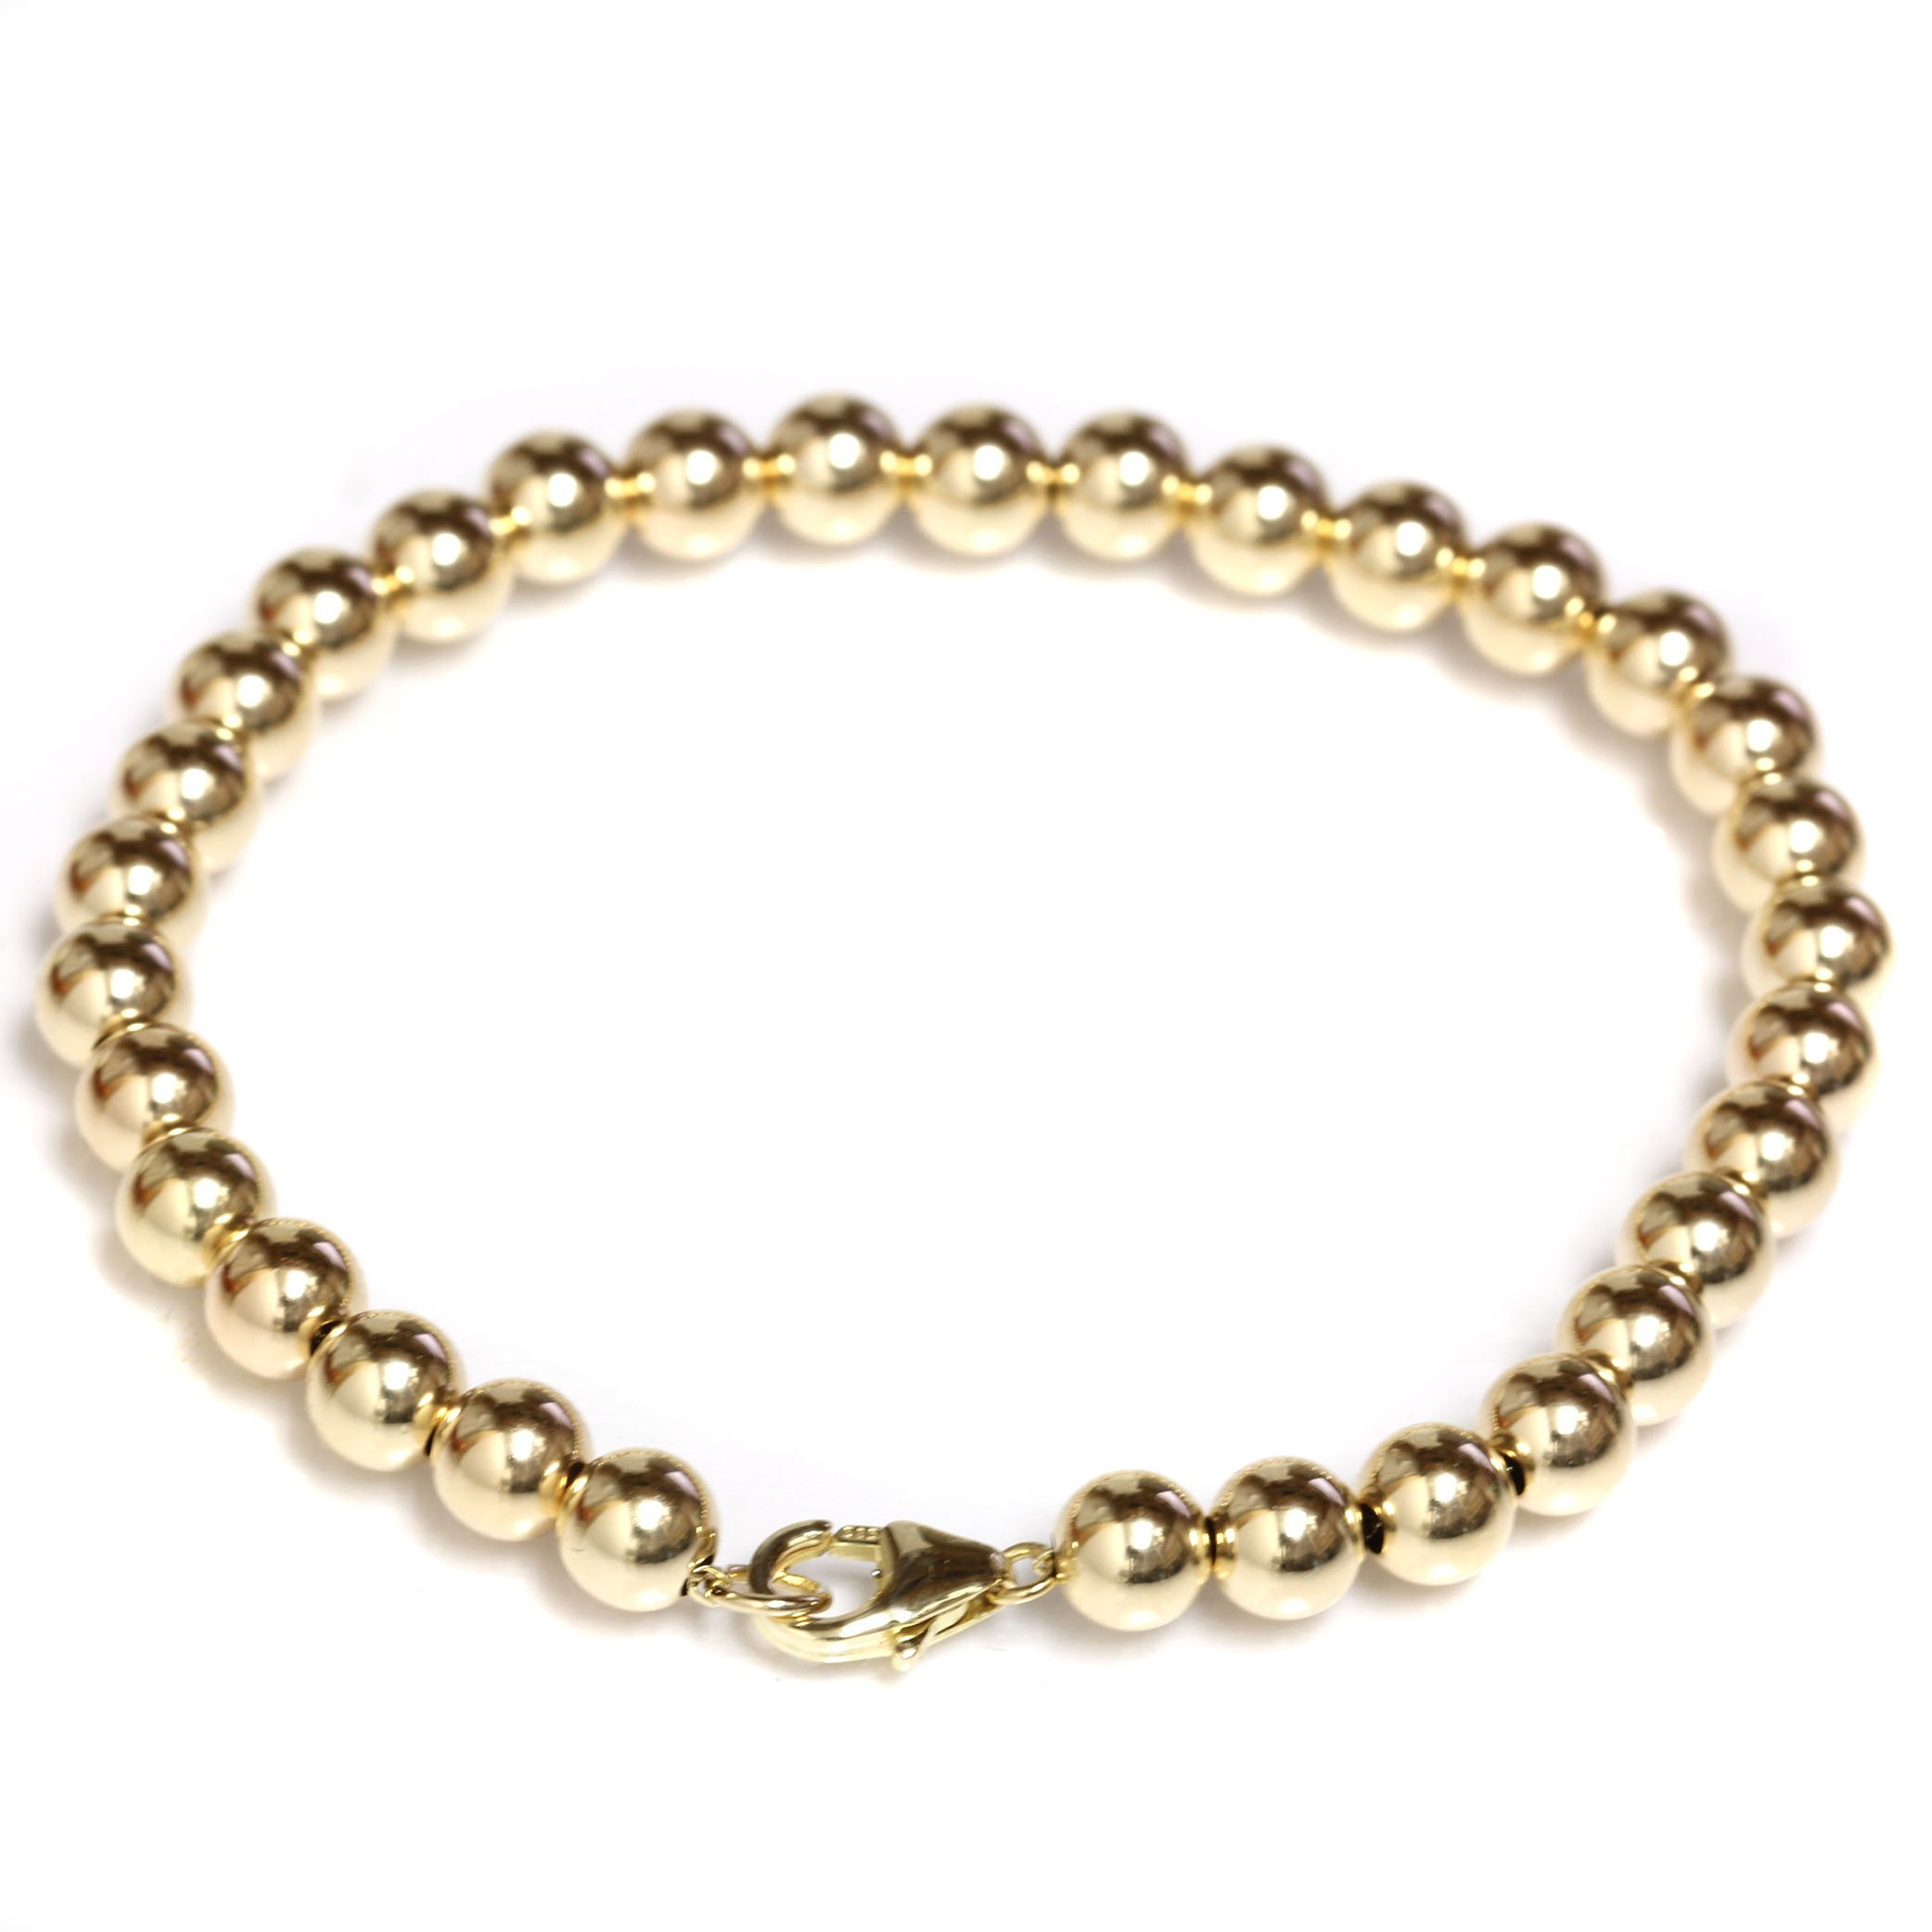 Beaded Bracelet 14k Solid Yellow Gold with Lobster Clasp 5 mm Beads 6'', 6.5'', 7'', 7.5'' (yellow-gold, 6)